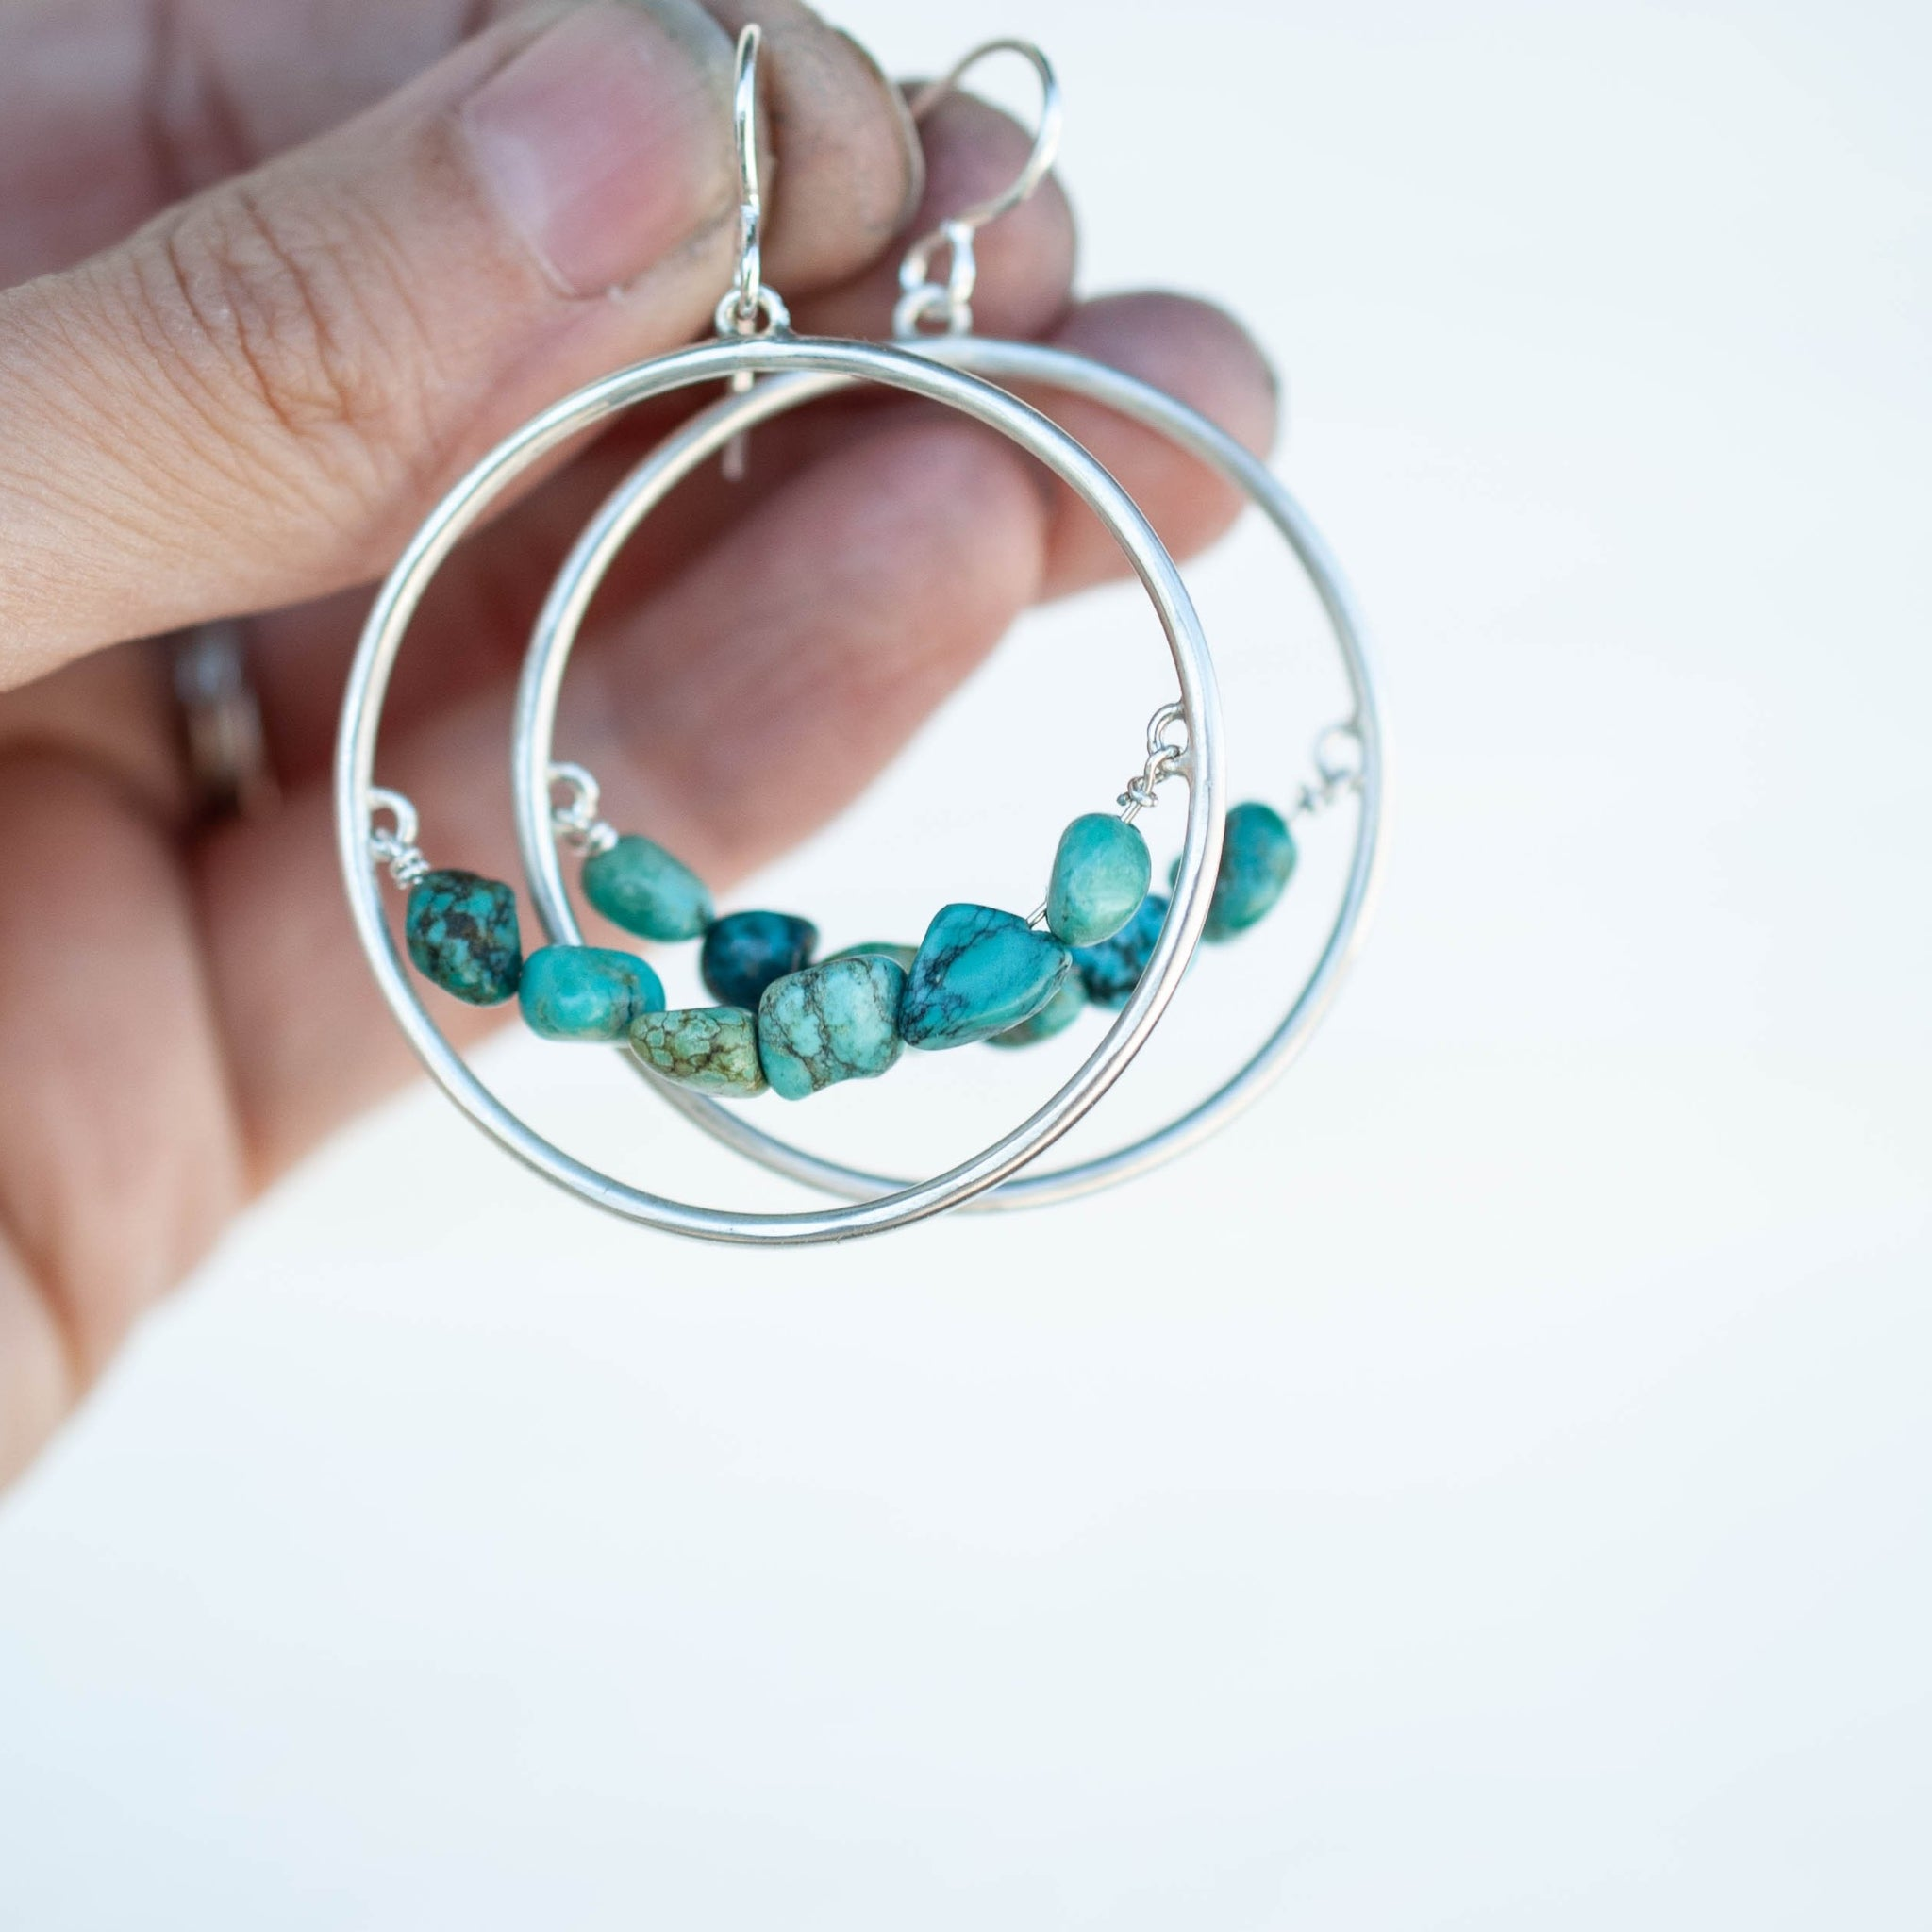 Beaded Hoop Earrings 1